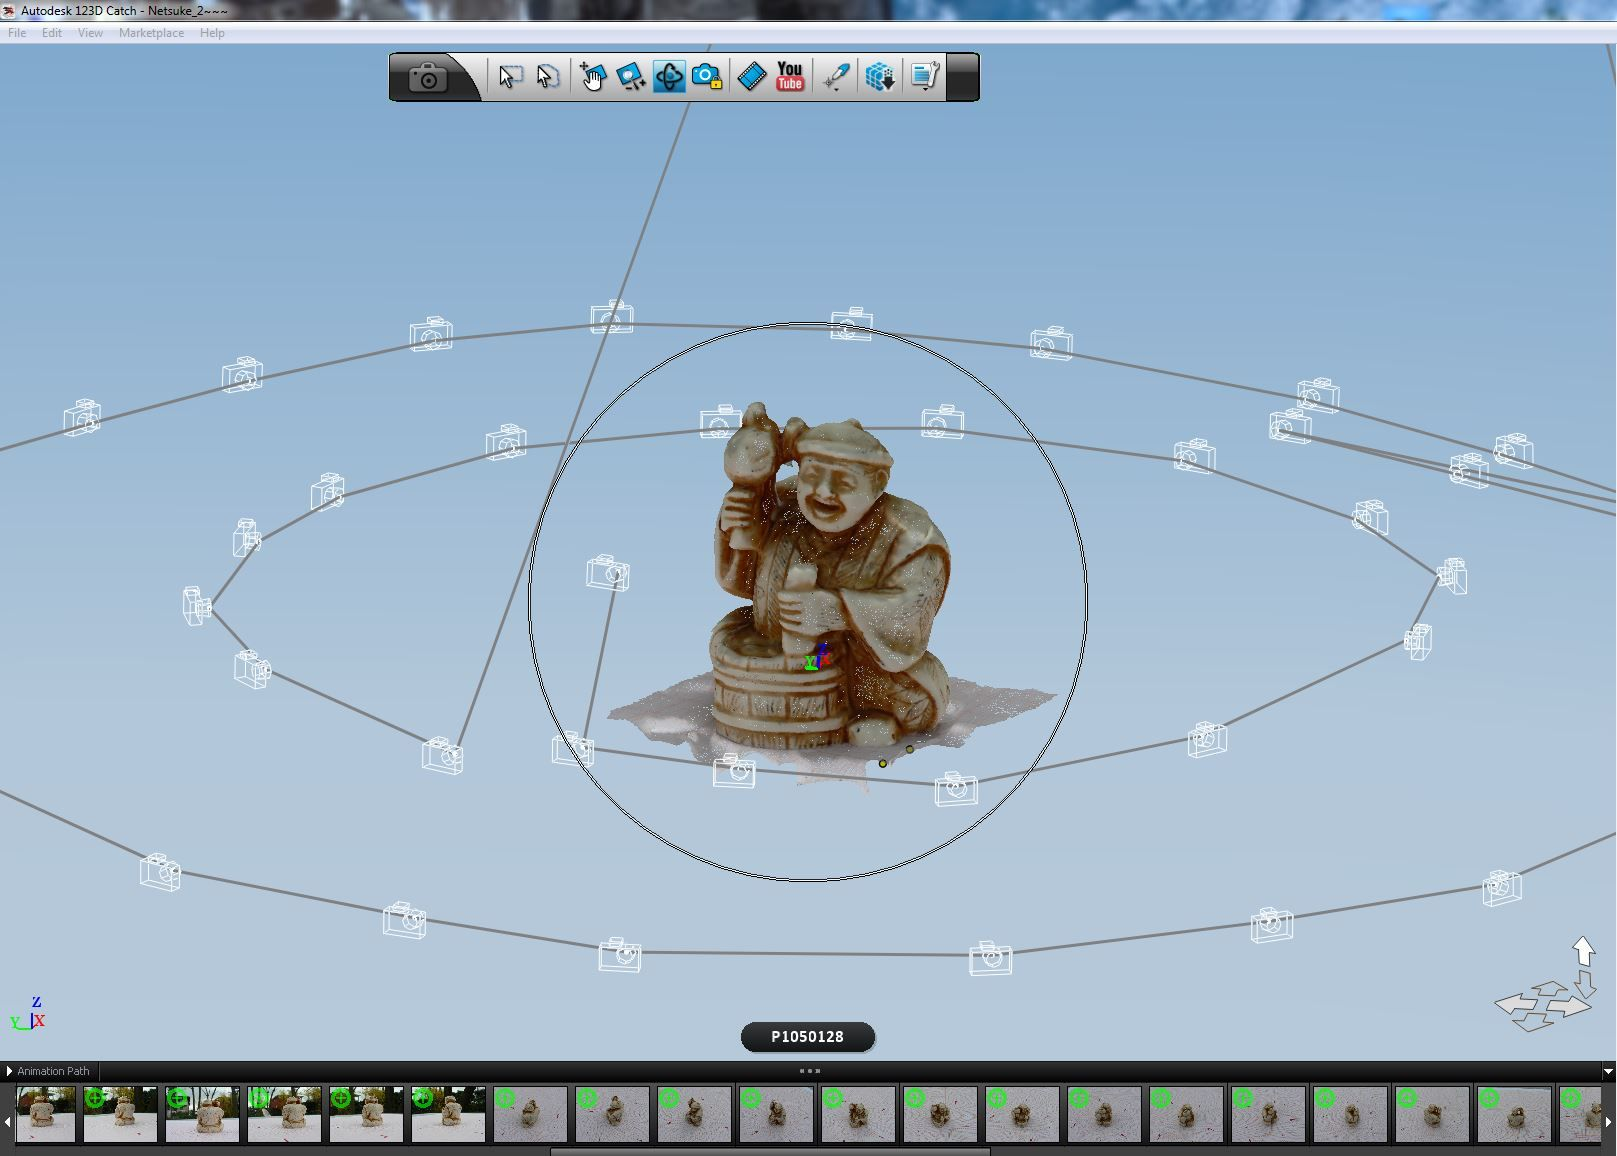 123D Catch, photogrammetry in the cloud Printing